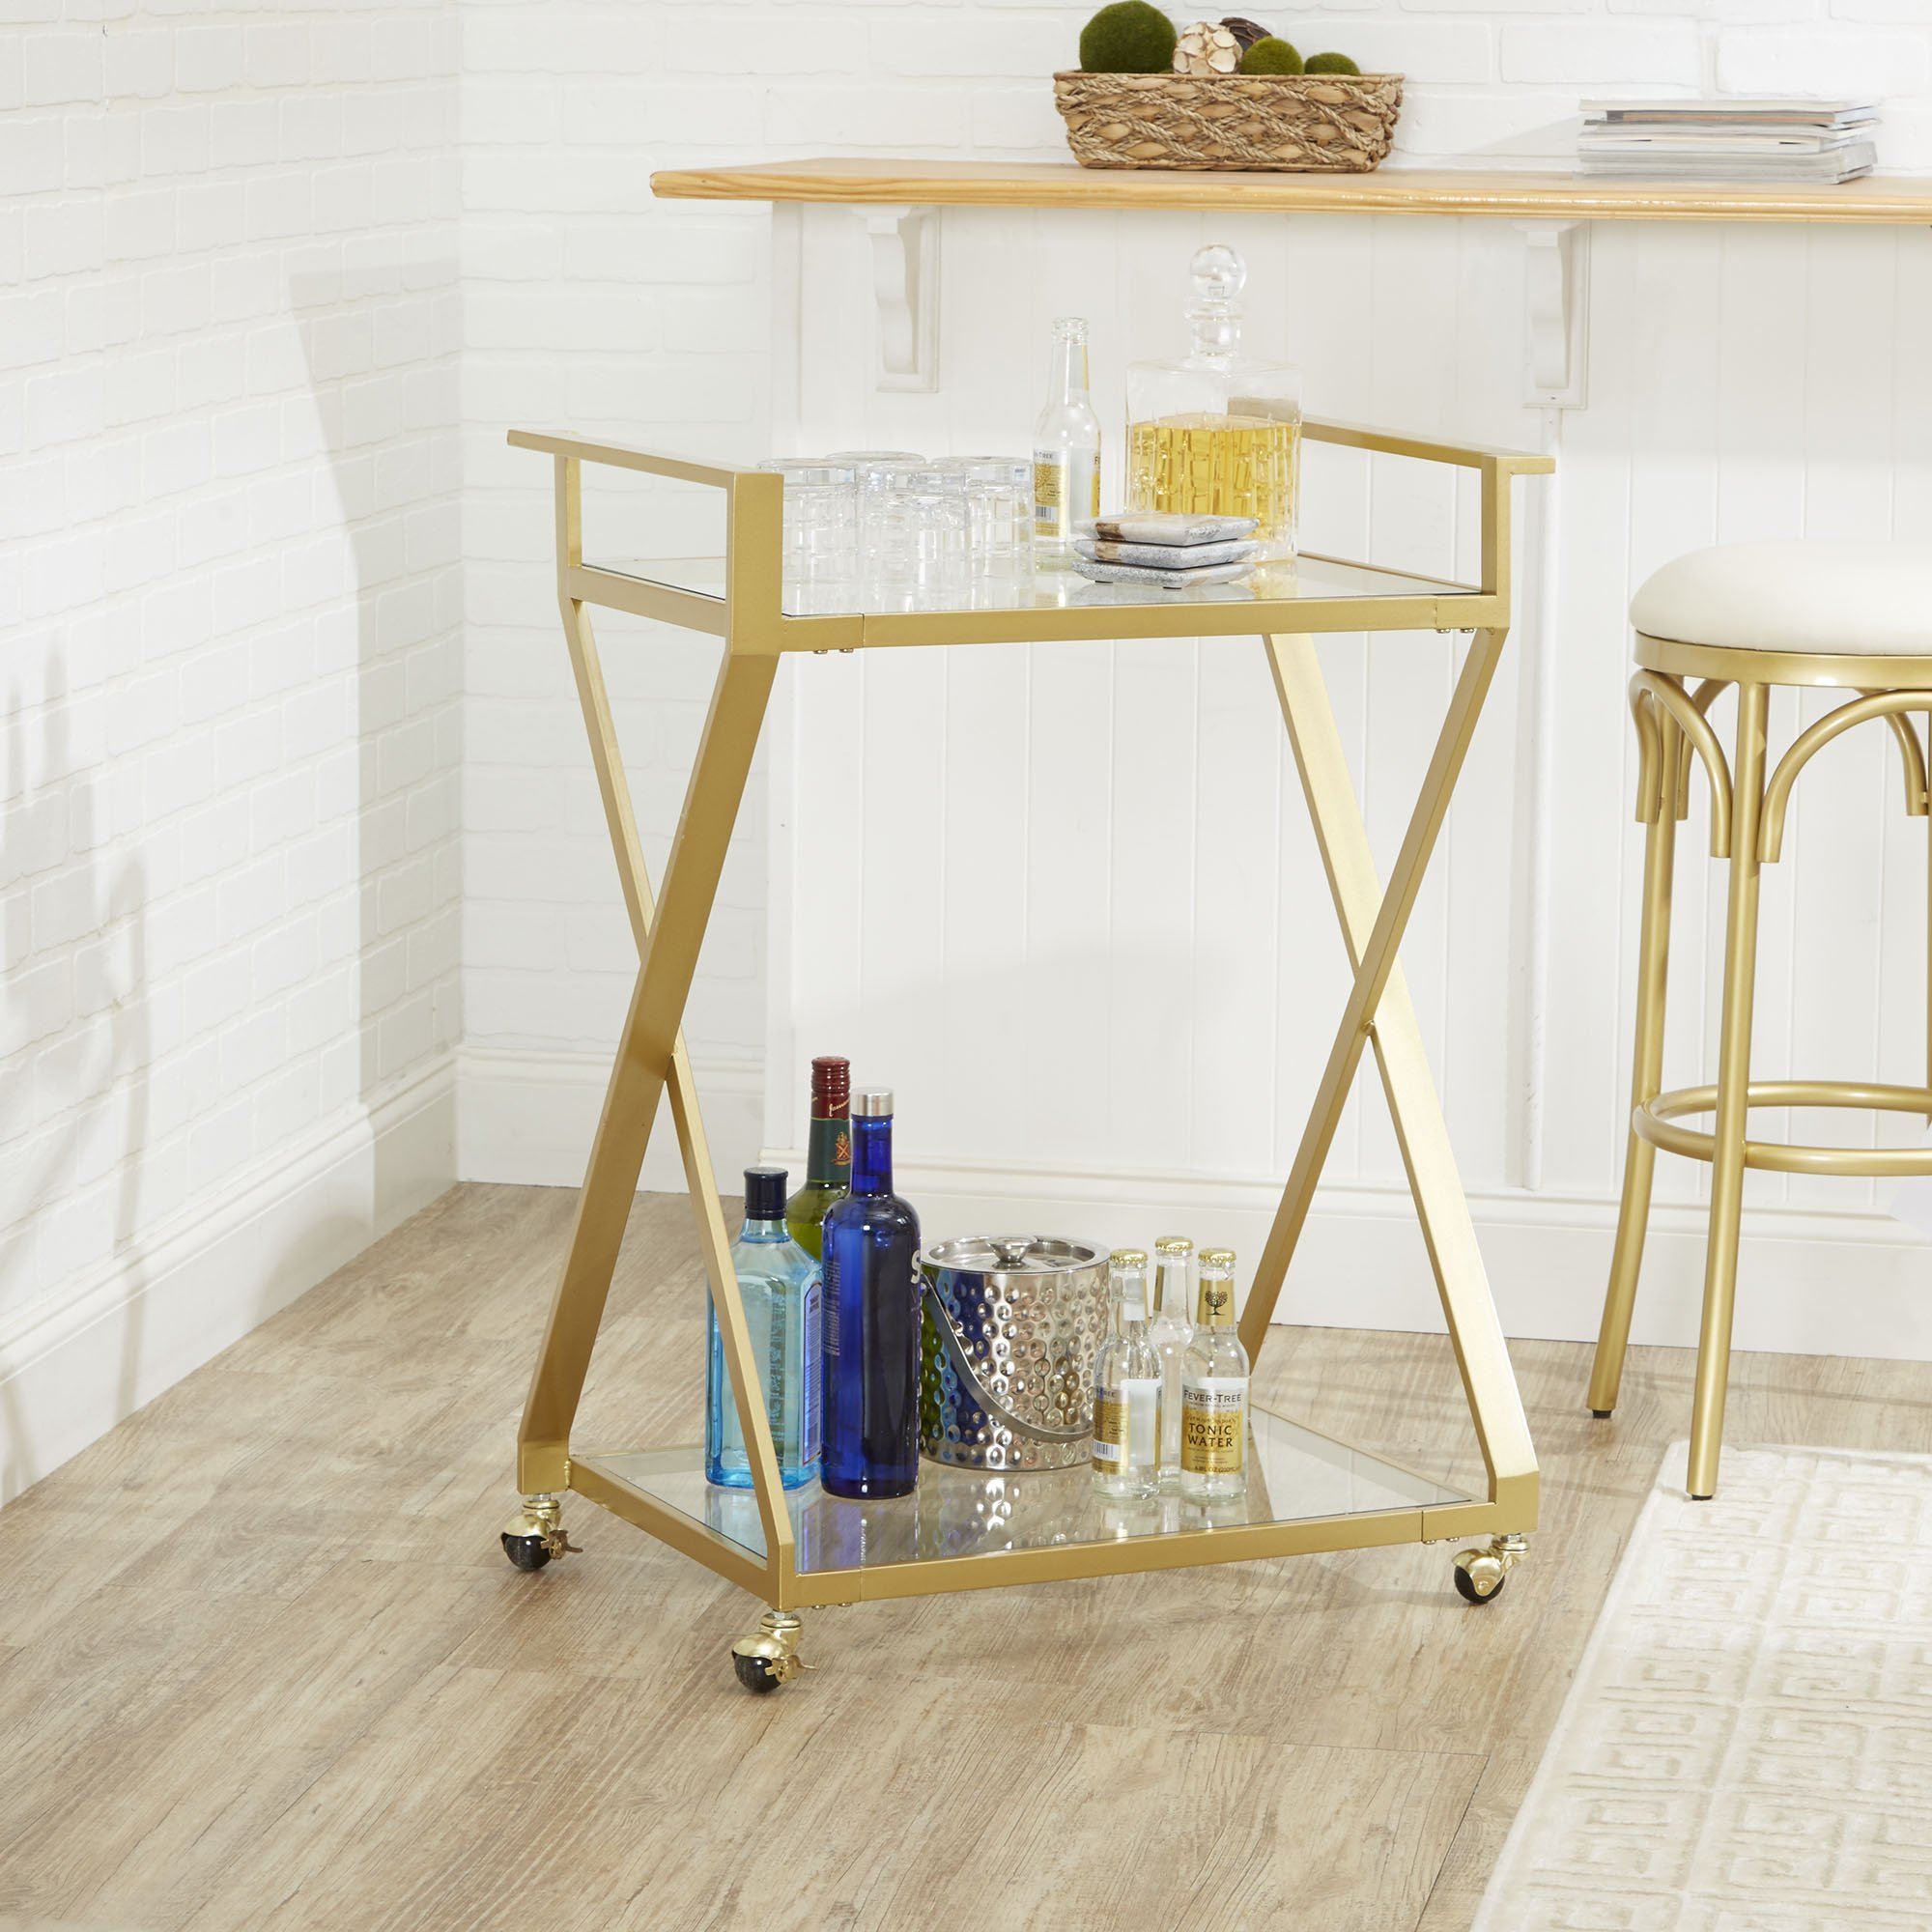 Silverwood CPFS1255-G-SG Serving Cart, 16 L X 26 W X 34 H in in, Gold by Silverwood